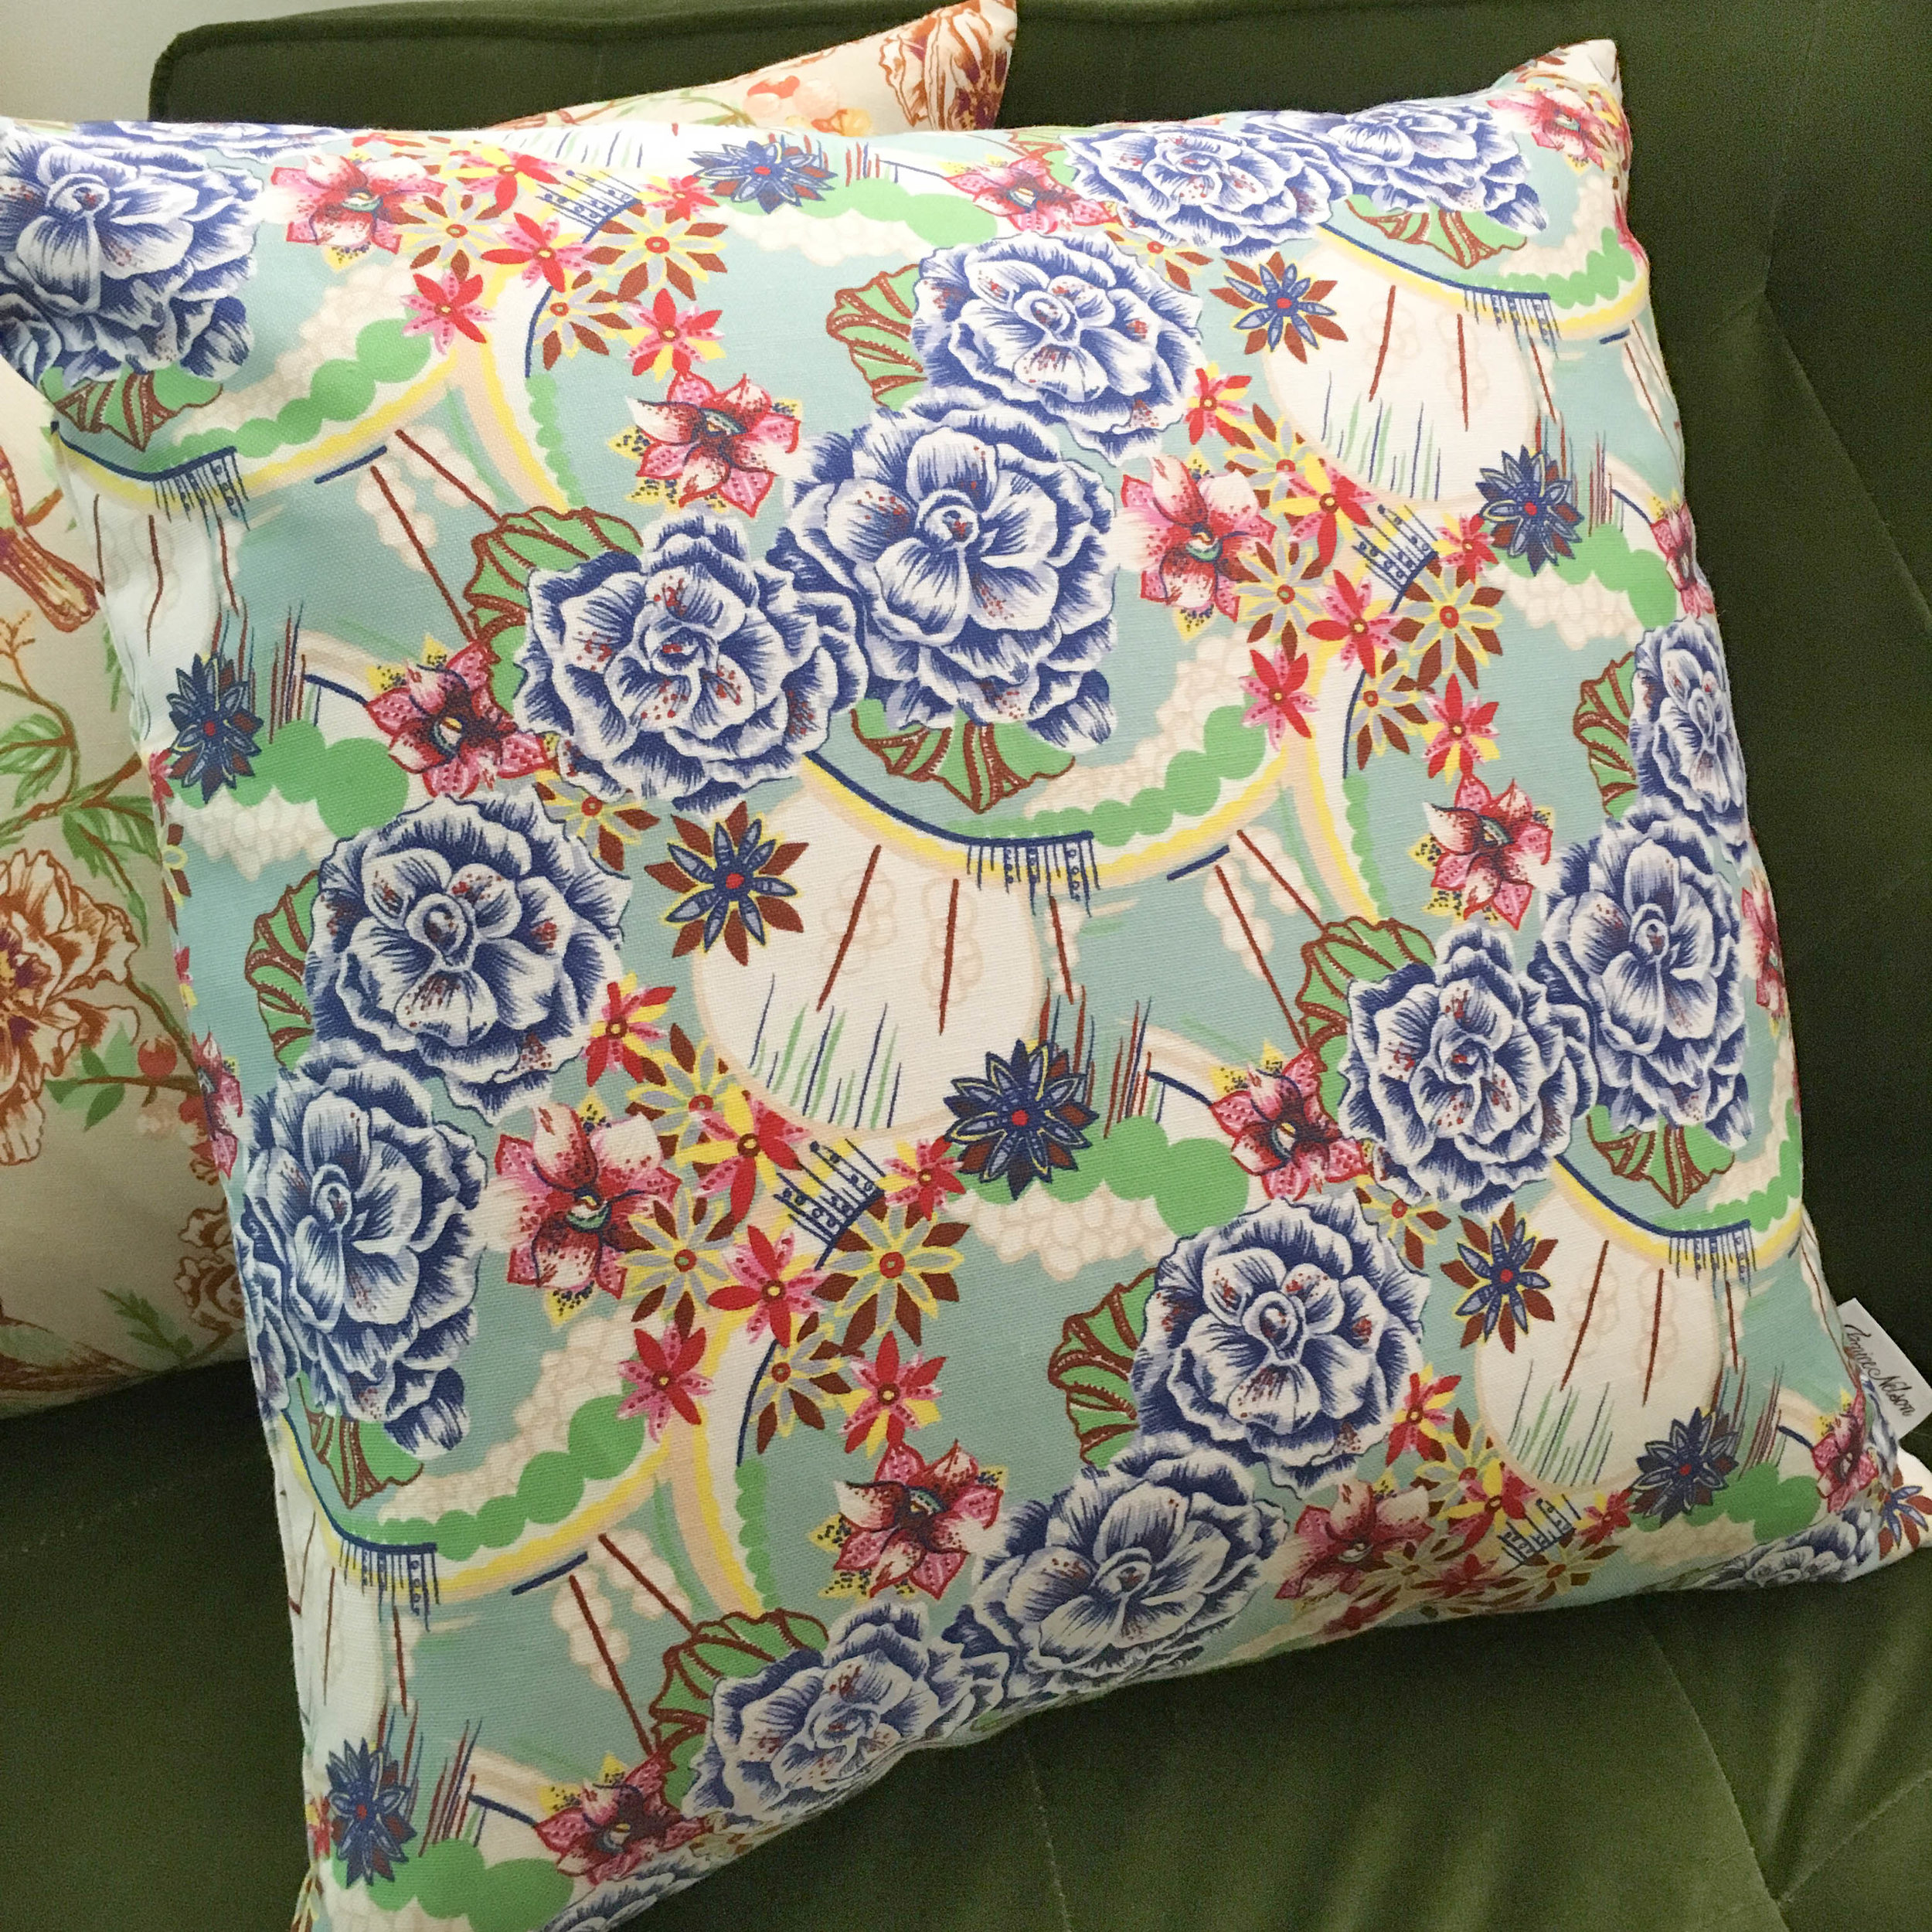 The 'Reverie' pillow is a bright and ornate textile design with cobalt blue begonias, pops of red and pink flowers, and sunburst-like line work that creates a daydream- like print.